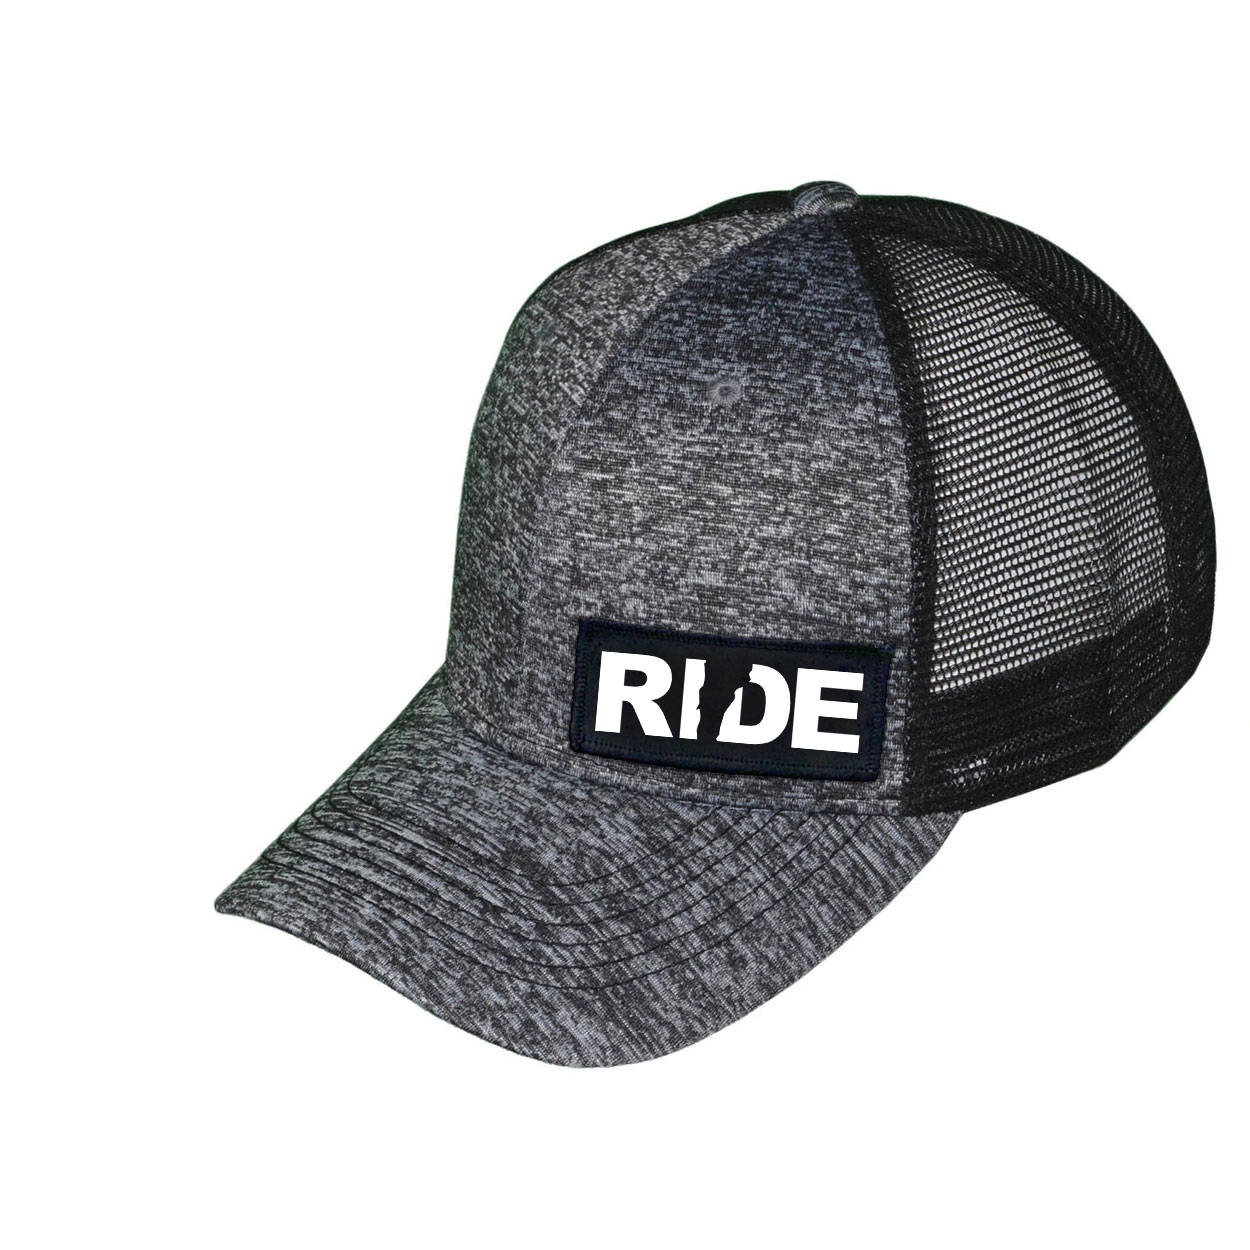 Ride Vermont Night Out Woven Patch Melange Snapback Trucker Hat Gray/Black (White Logo)